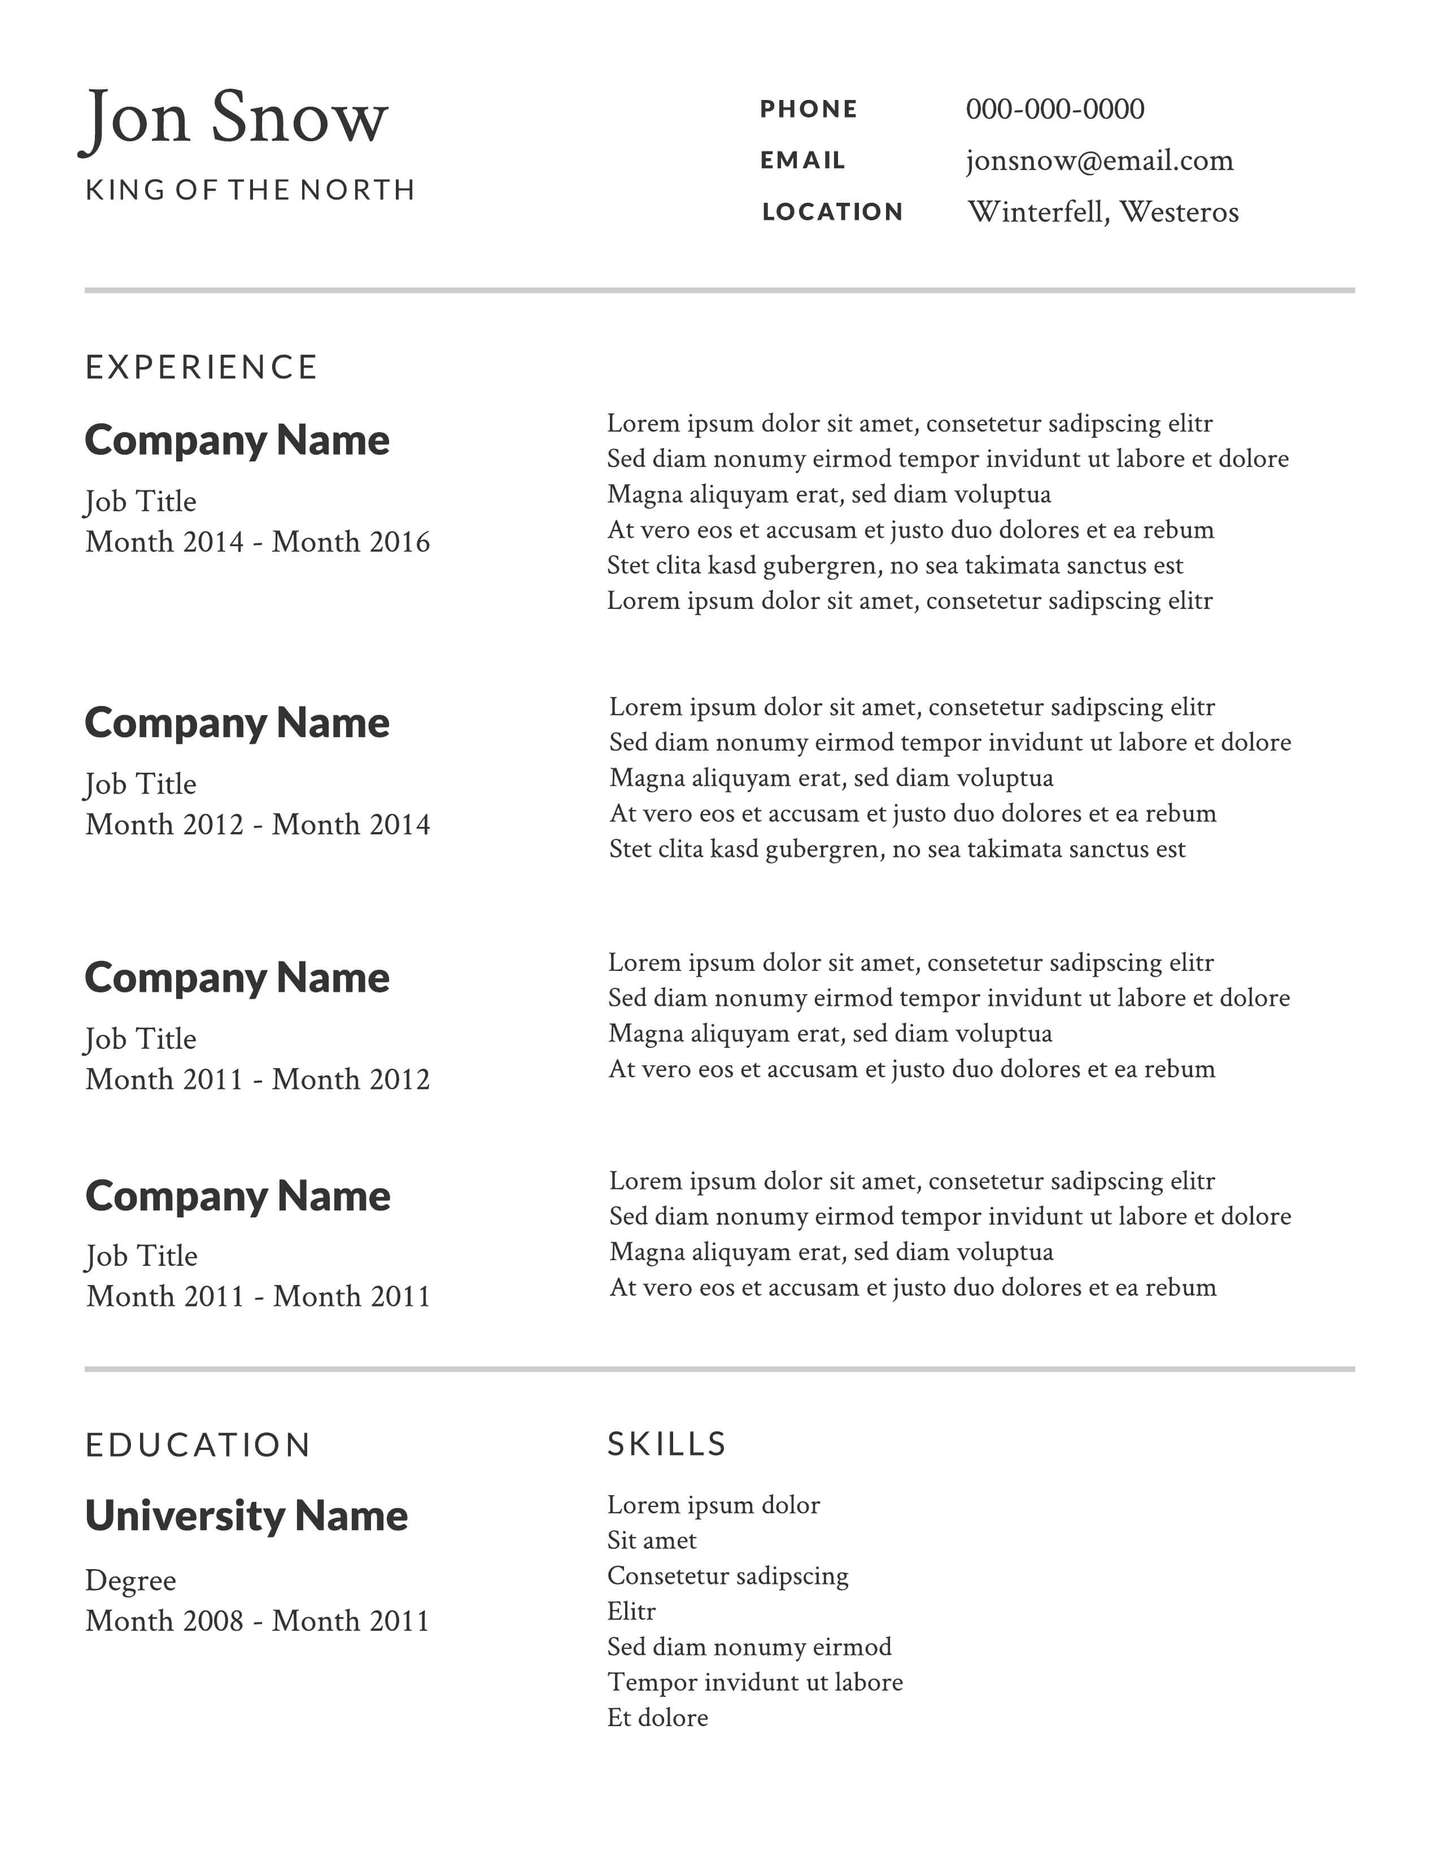 professional resume template lucidpress 2x chipotle job description photography objective Resume Professional Resume Template